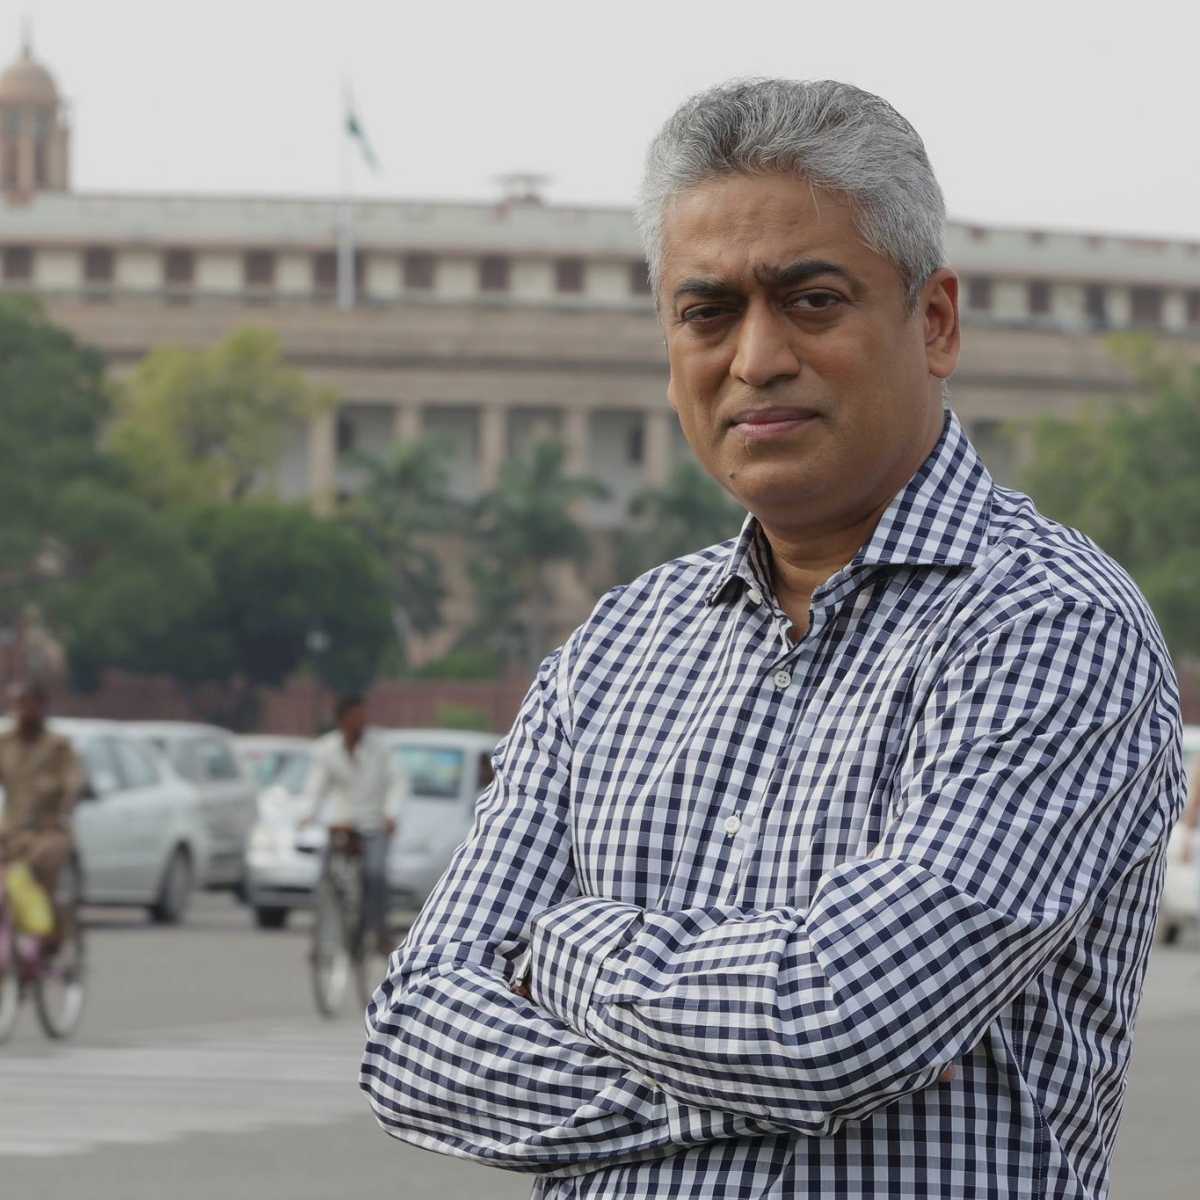 Fact check: No, Rajdeep Sardesai wasn't dancing to celebrate AAP victory